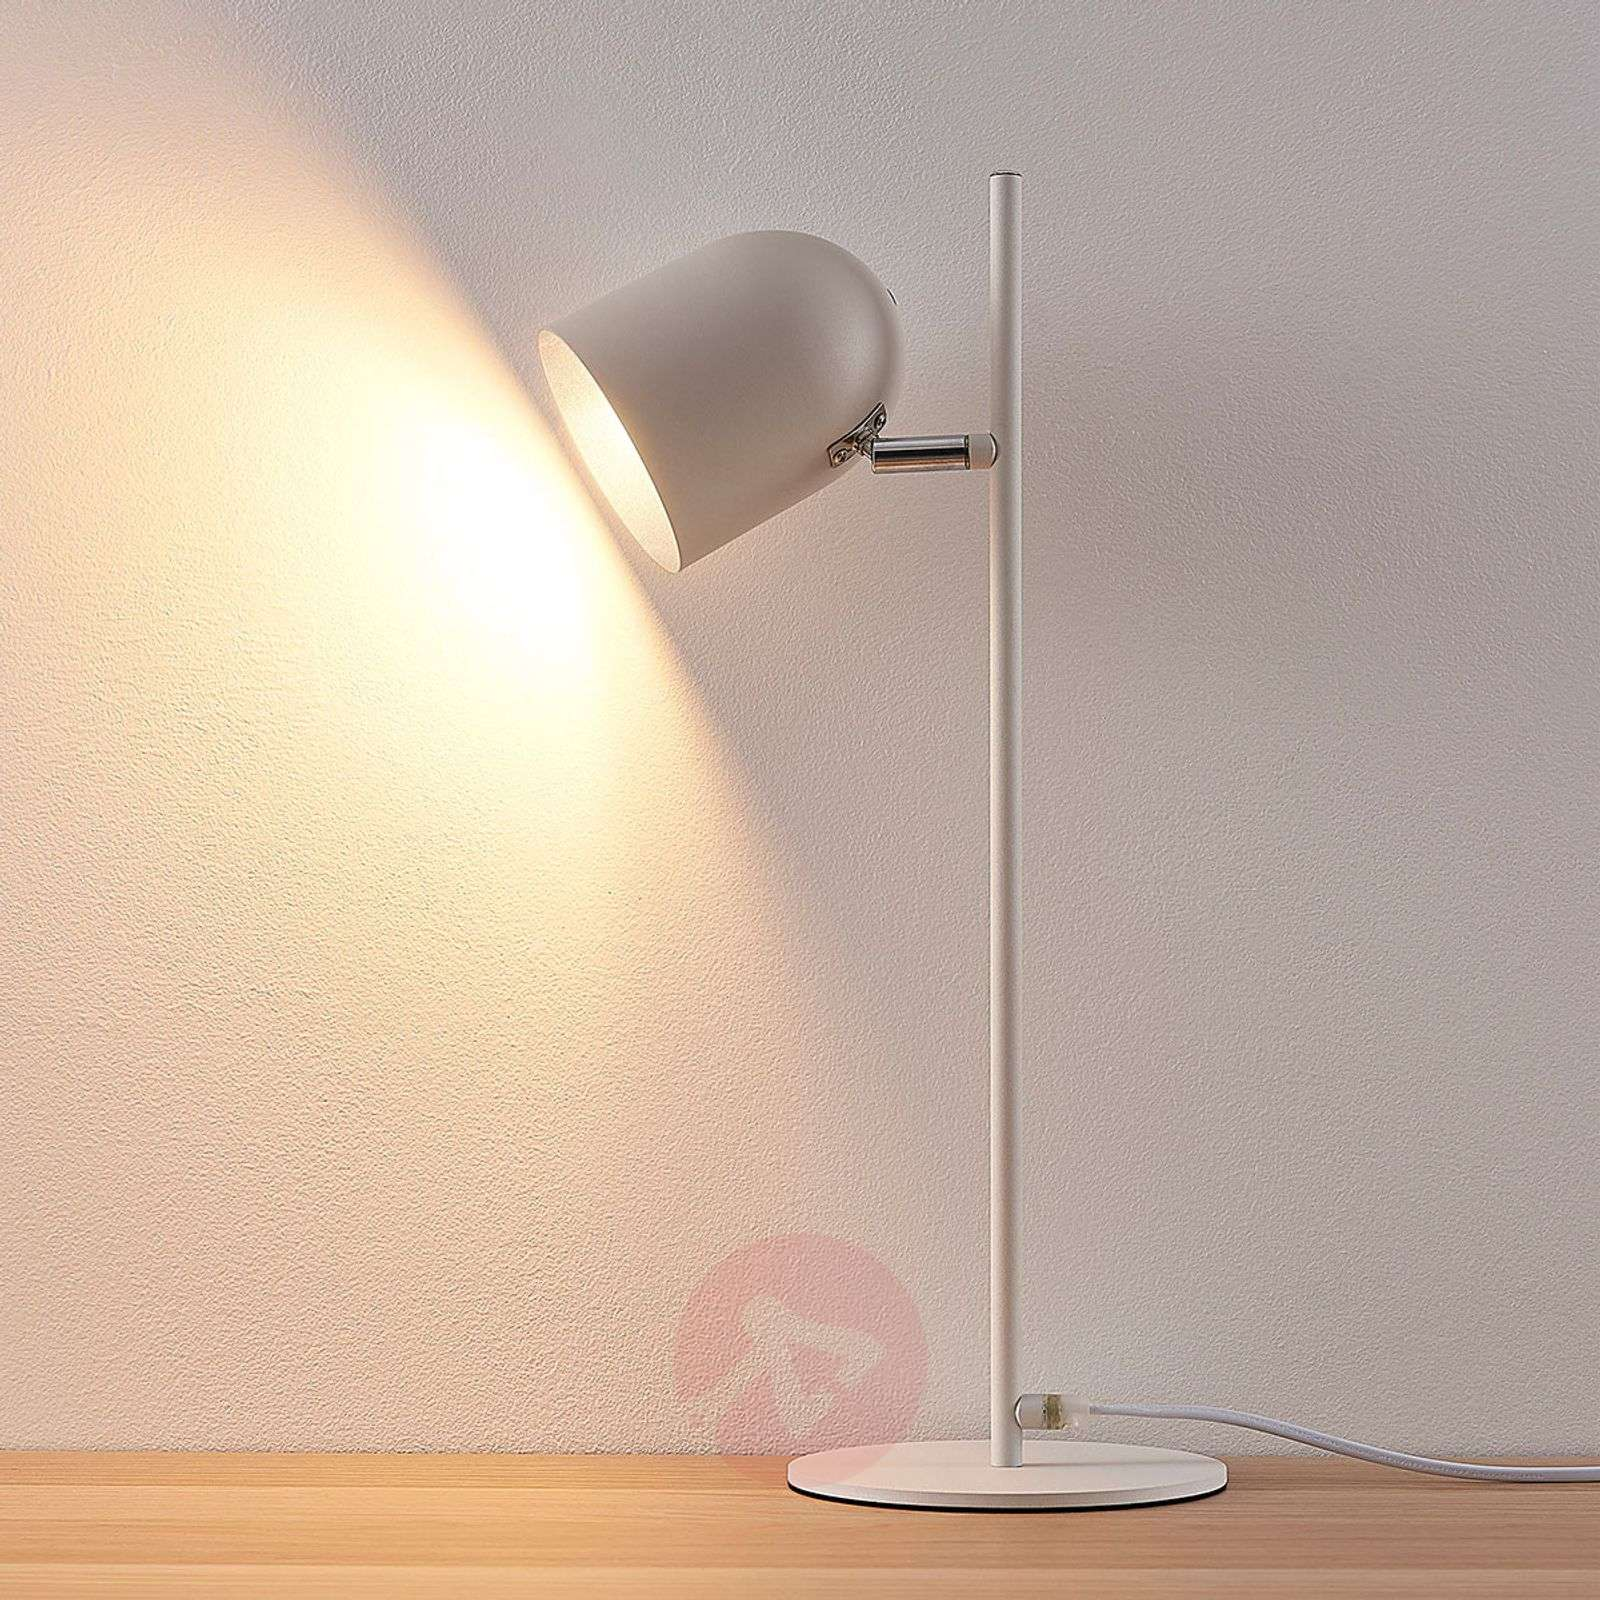 White-silver table lamp Morik in a modern style-9624161-02